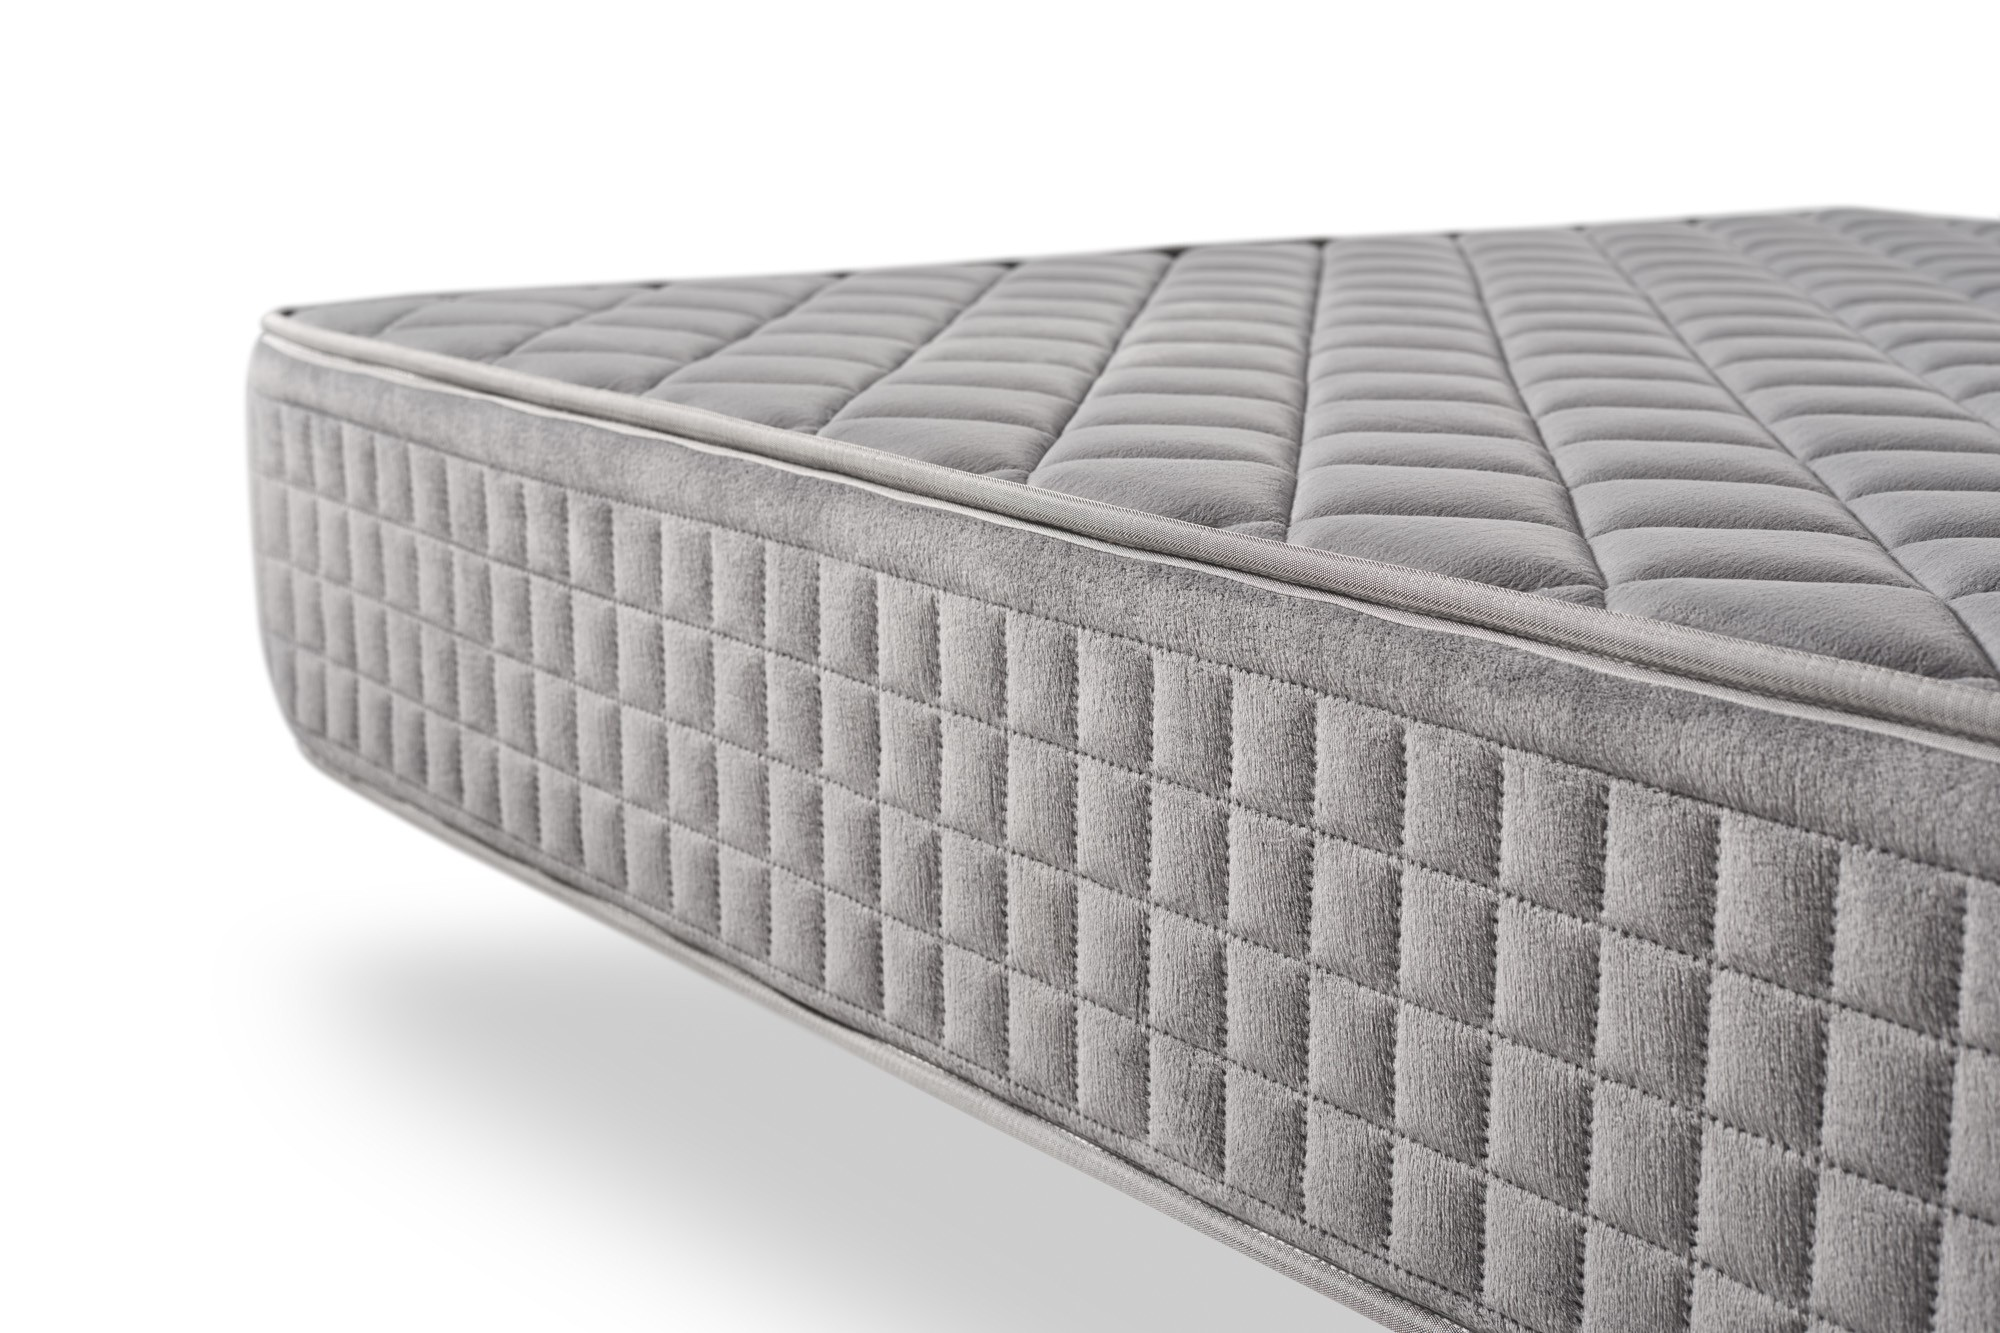 Its AeraPur HQ polyurethane core provides firm support to ensure a comfortable, cool and healthy rest.